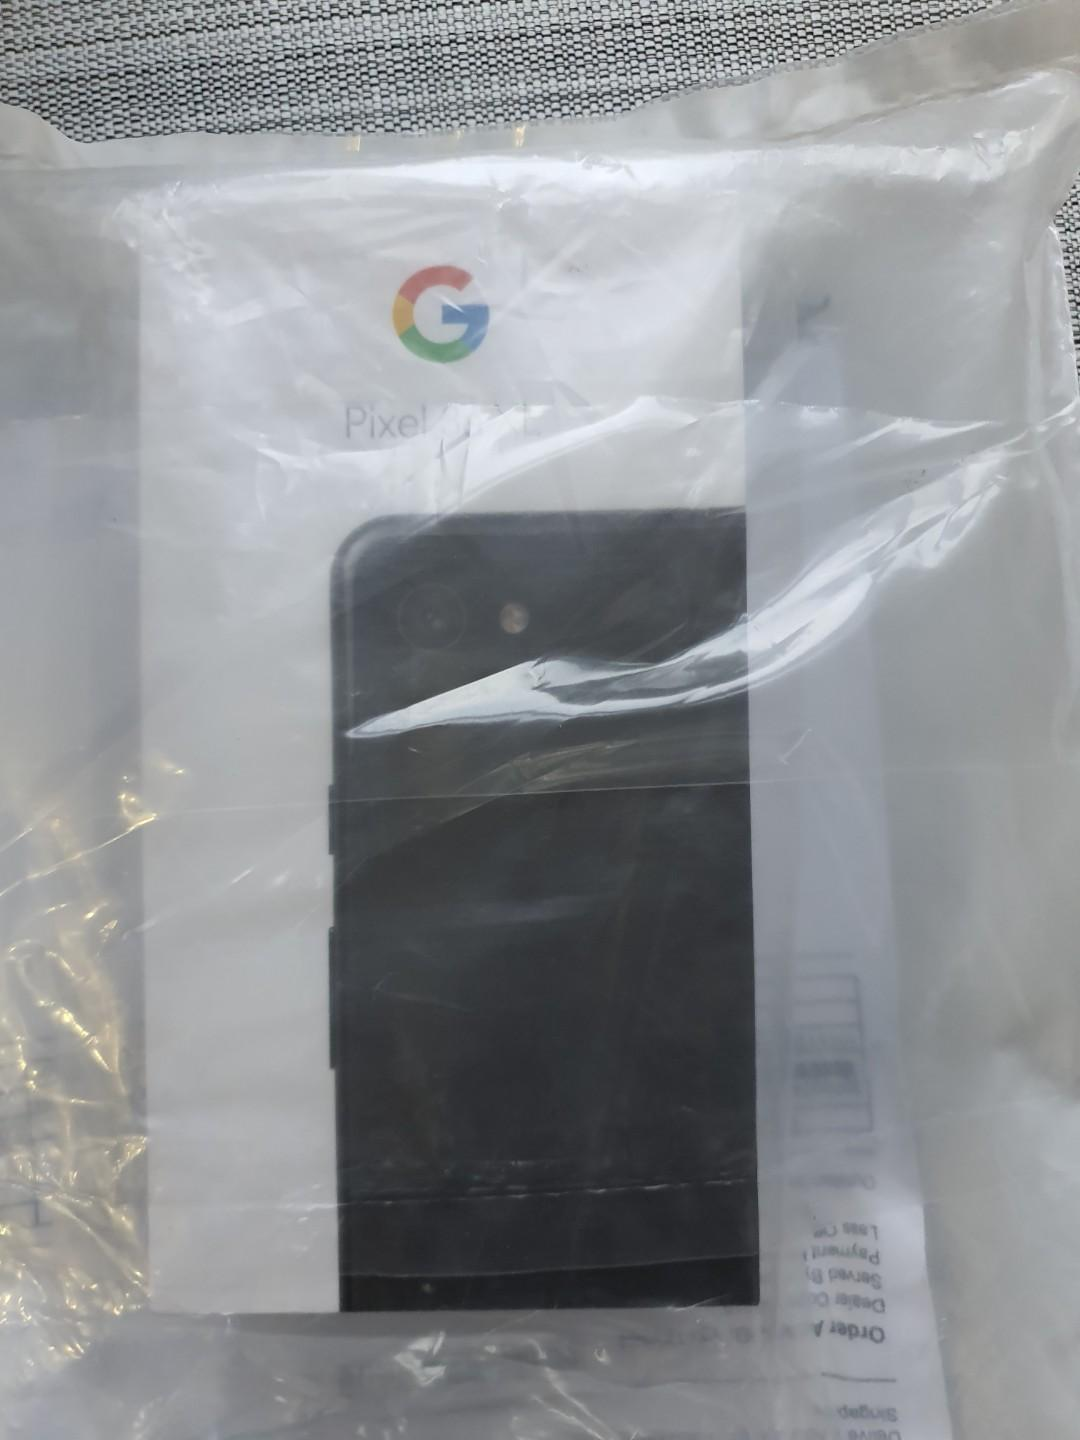 New (Sealed pack) Pixel 3a XL. 64Gb. Black. Local warranty